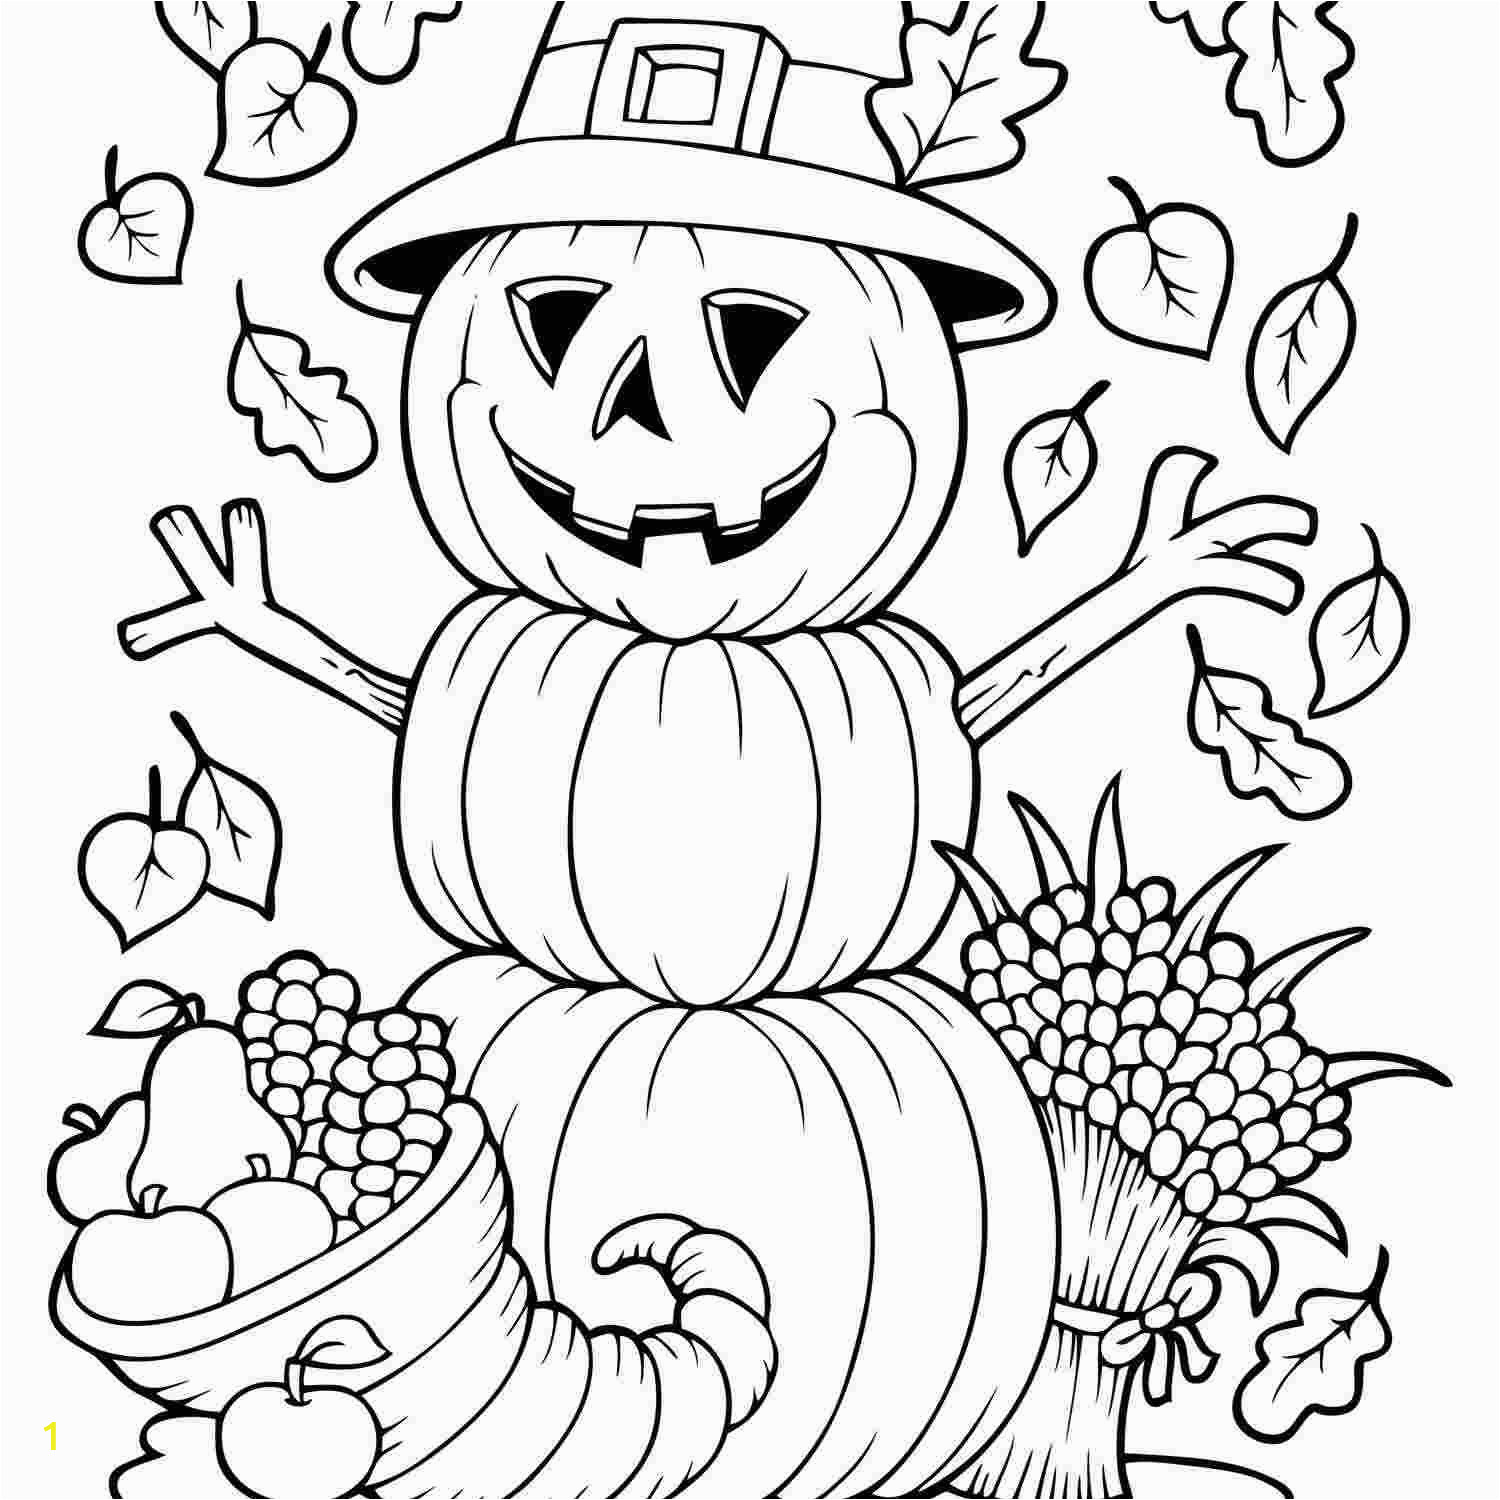 free printable coloring pages for fall free printable fall coloring pages for kids best printable coloring pages free fall for